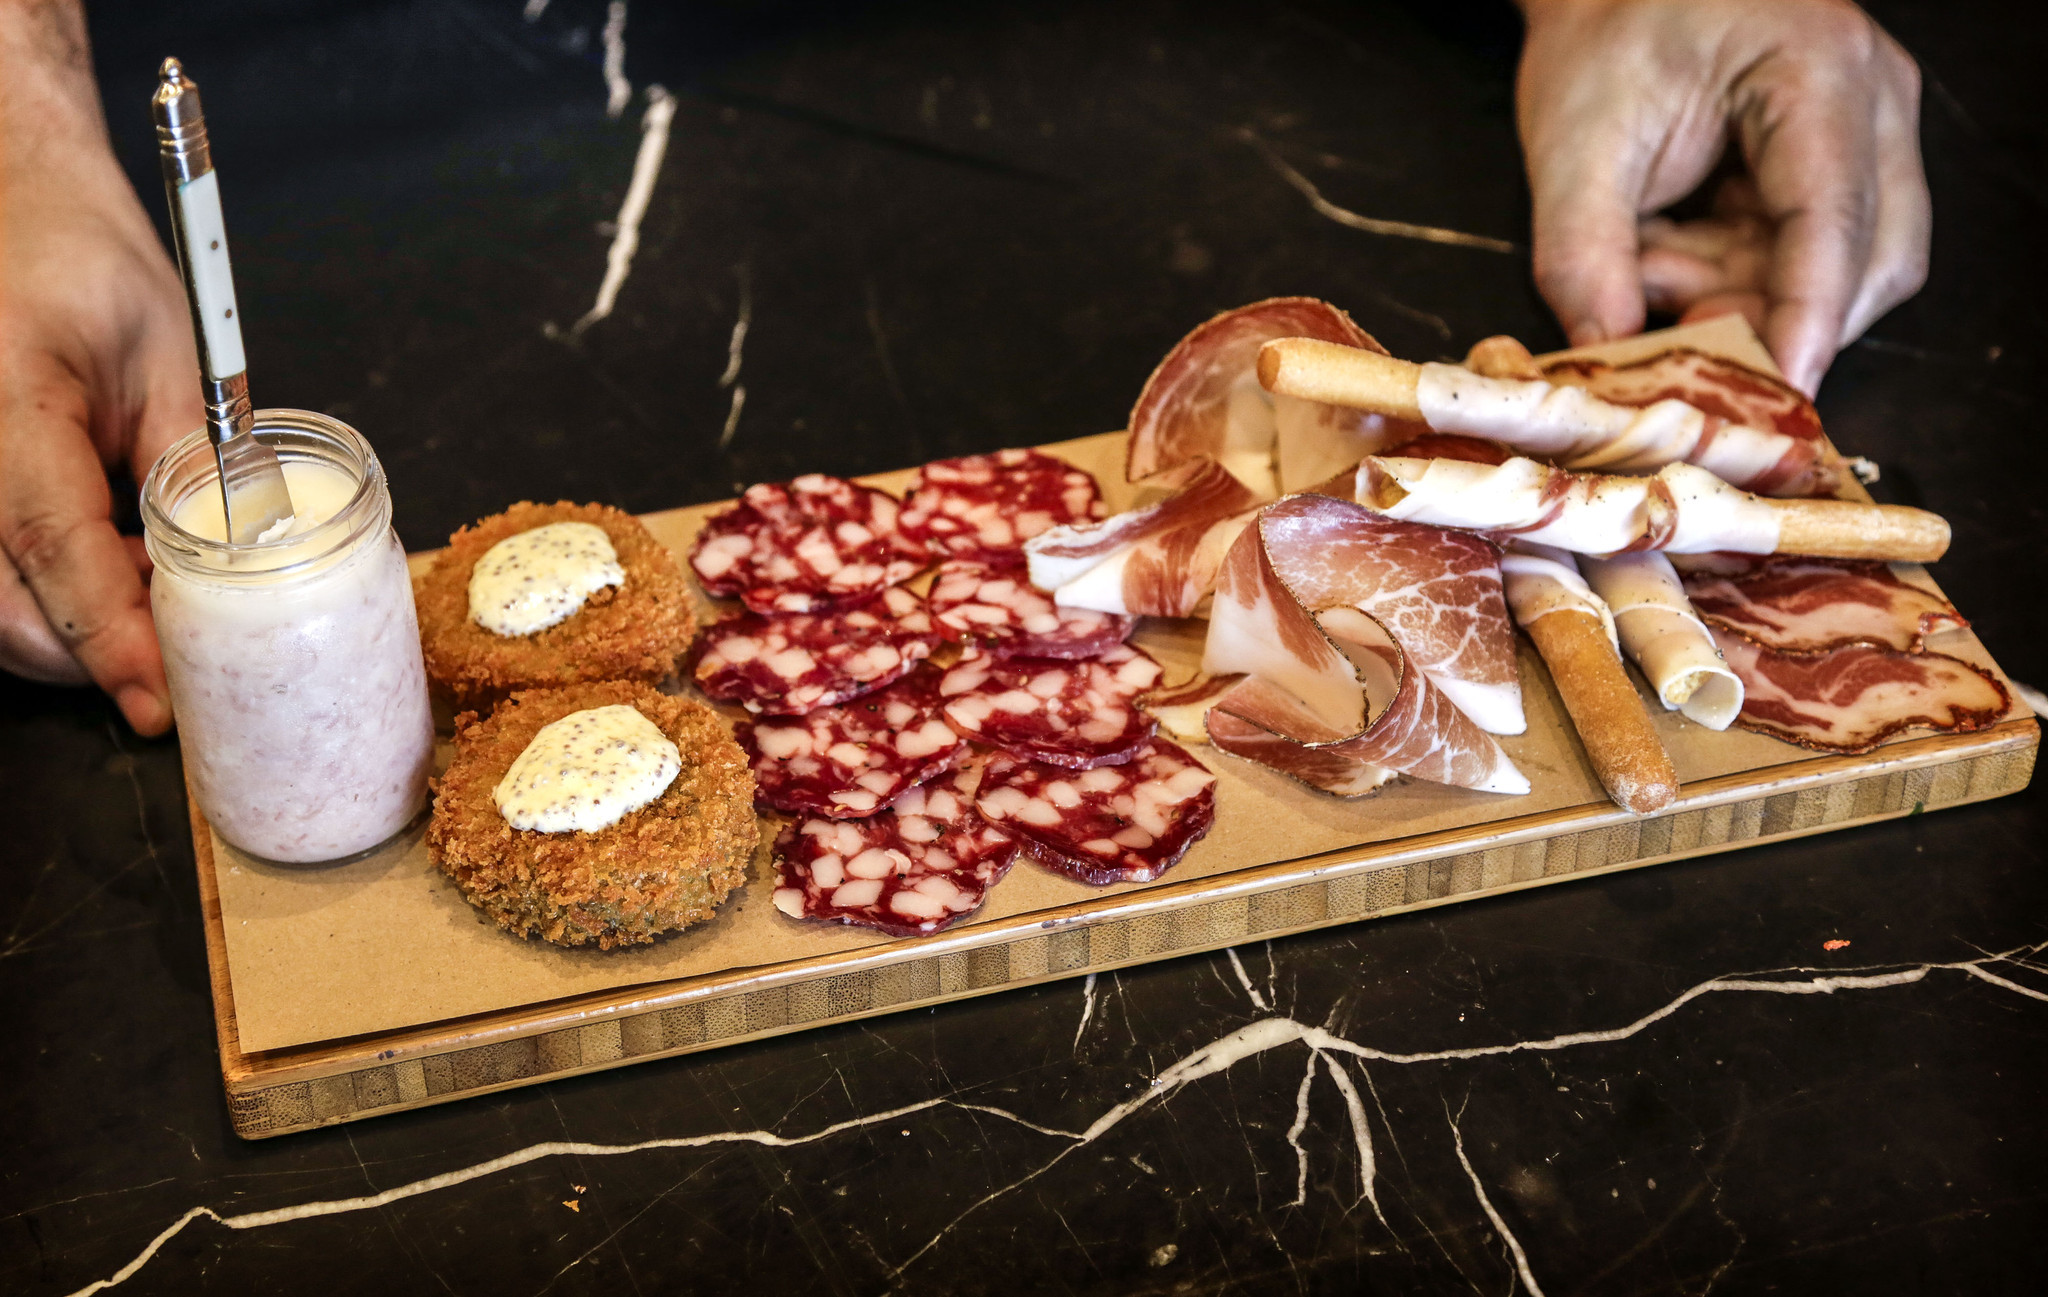 The Affettati Misti plate just prepared by Chef Chad Colby at CHI SPACCA. Featured on the plate from left to right is Pork butter, Trotter Fritti, Trappist Salami, Joe's Tocai Salami, Speck, Lardo wrapped grissini and Capocollo. (Ricardo DeAratanha/Los Angeles Times).